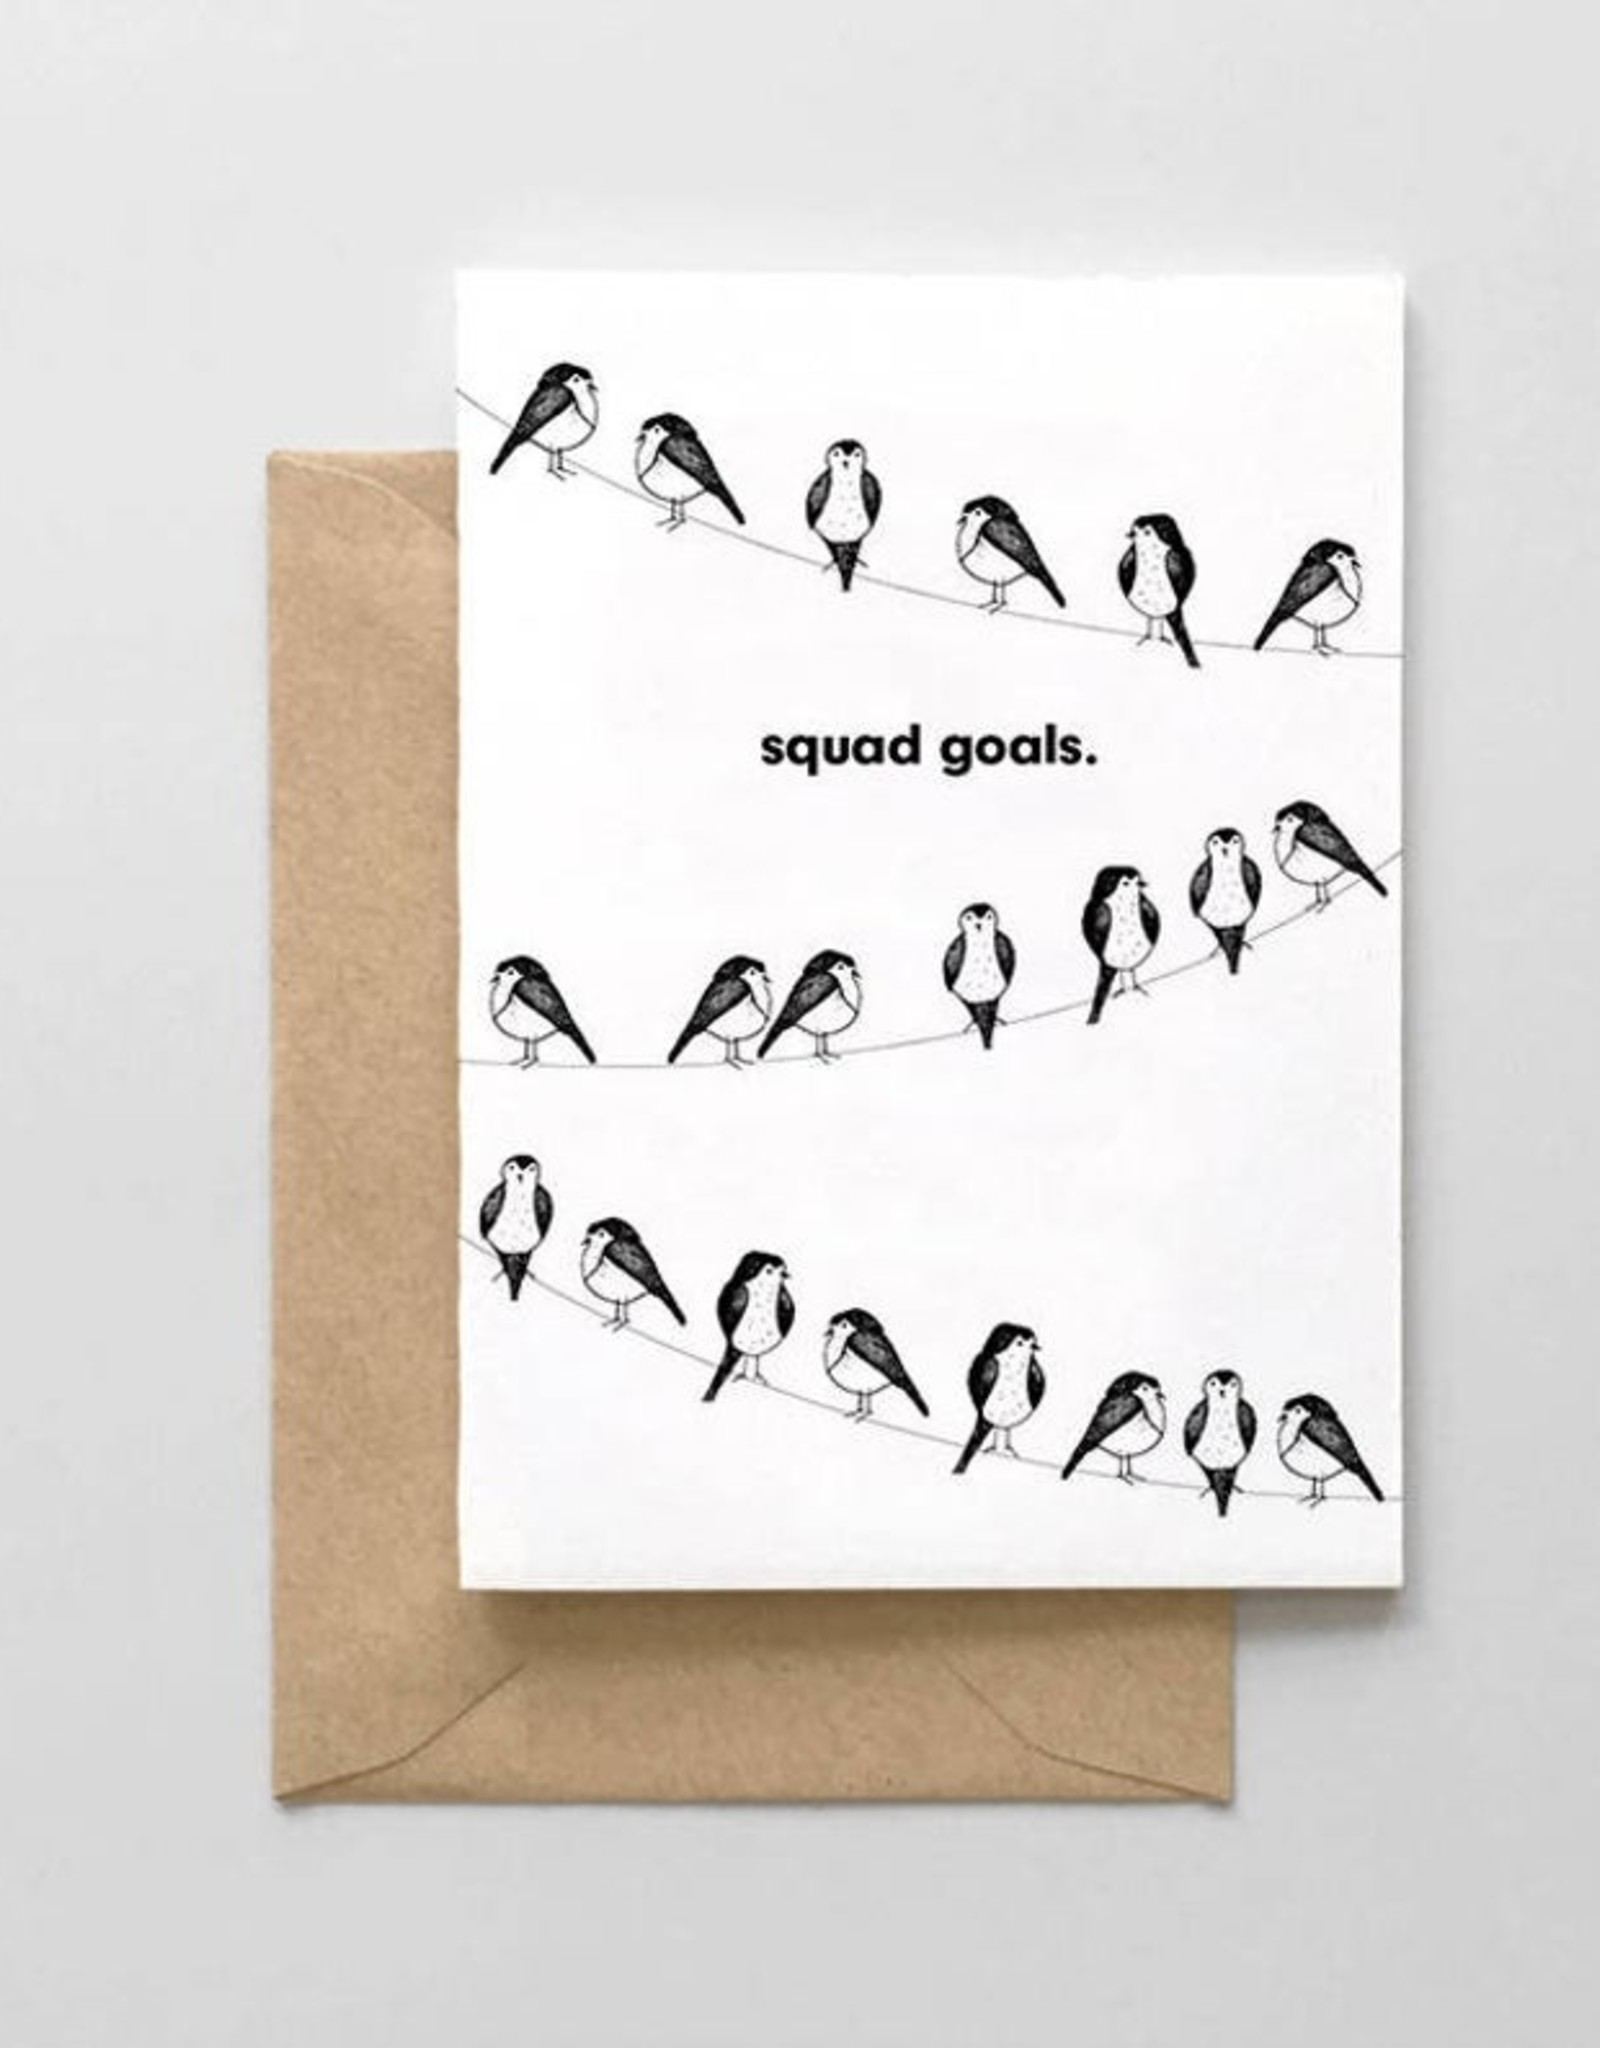 Spaghetti and Meatballs Card - Blank: Squad Goals